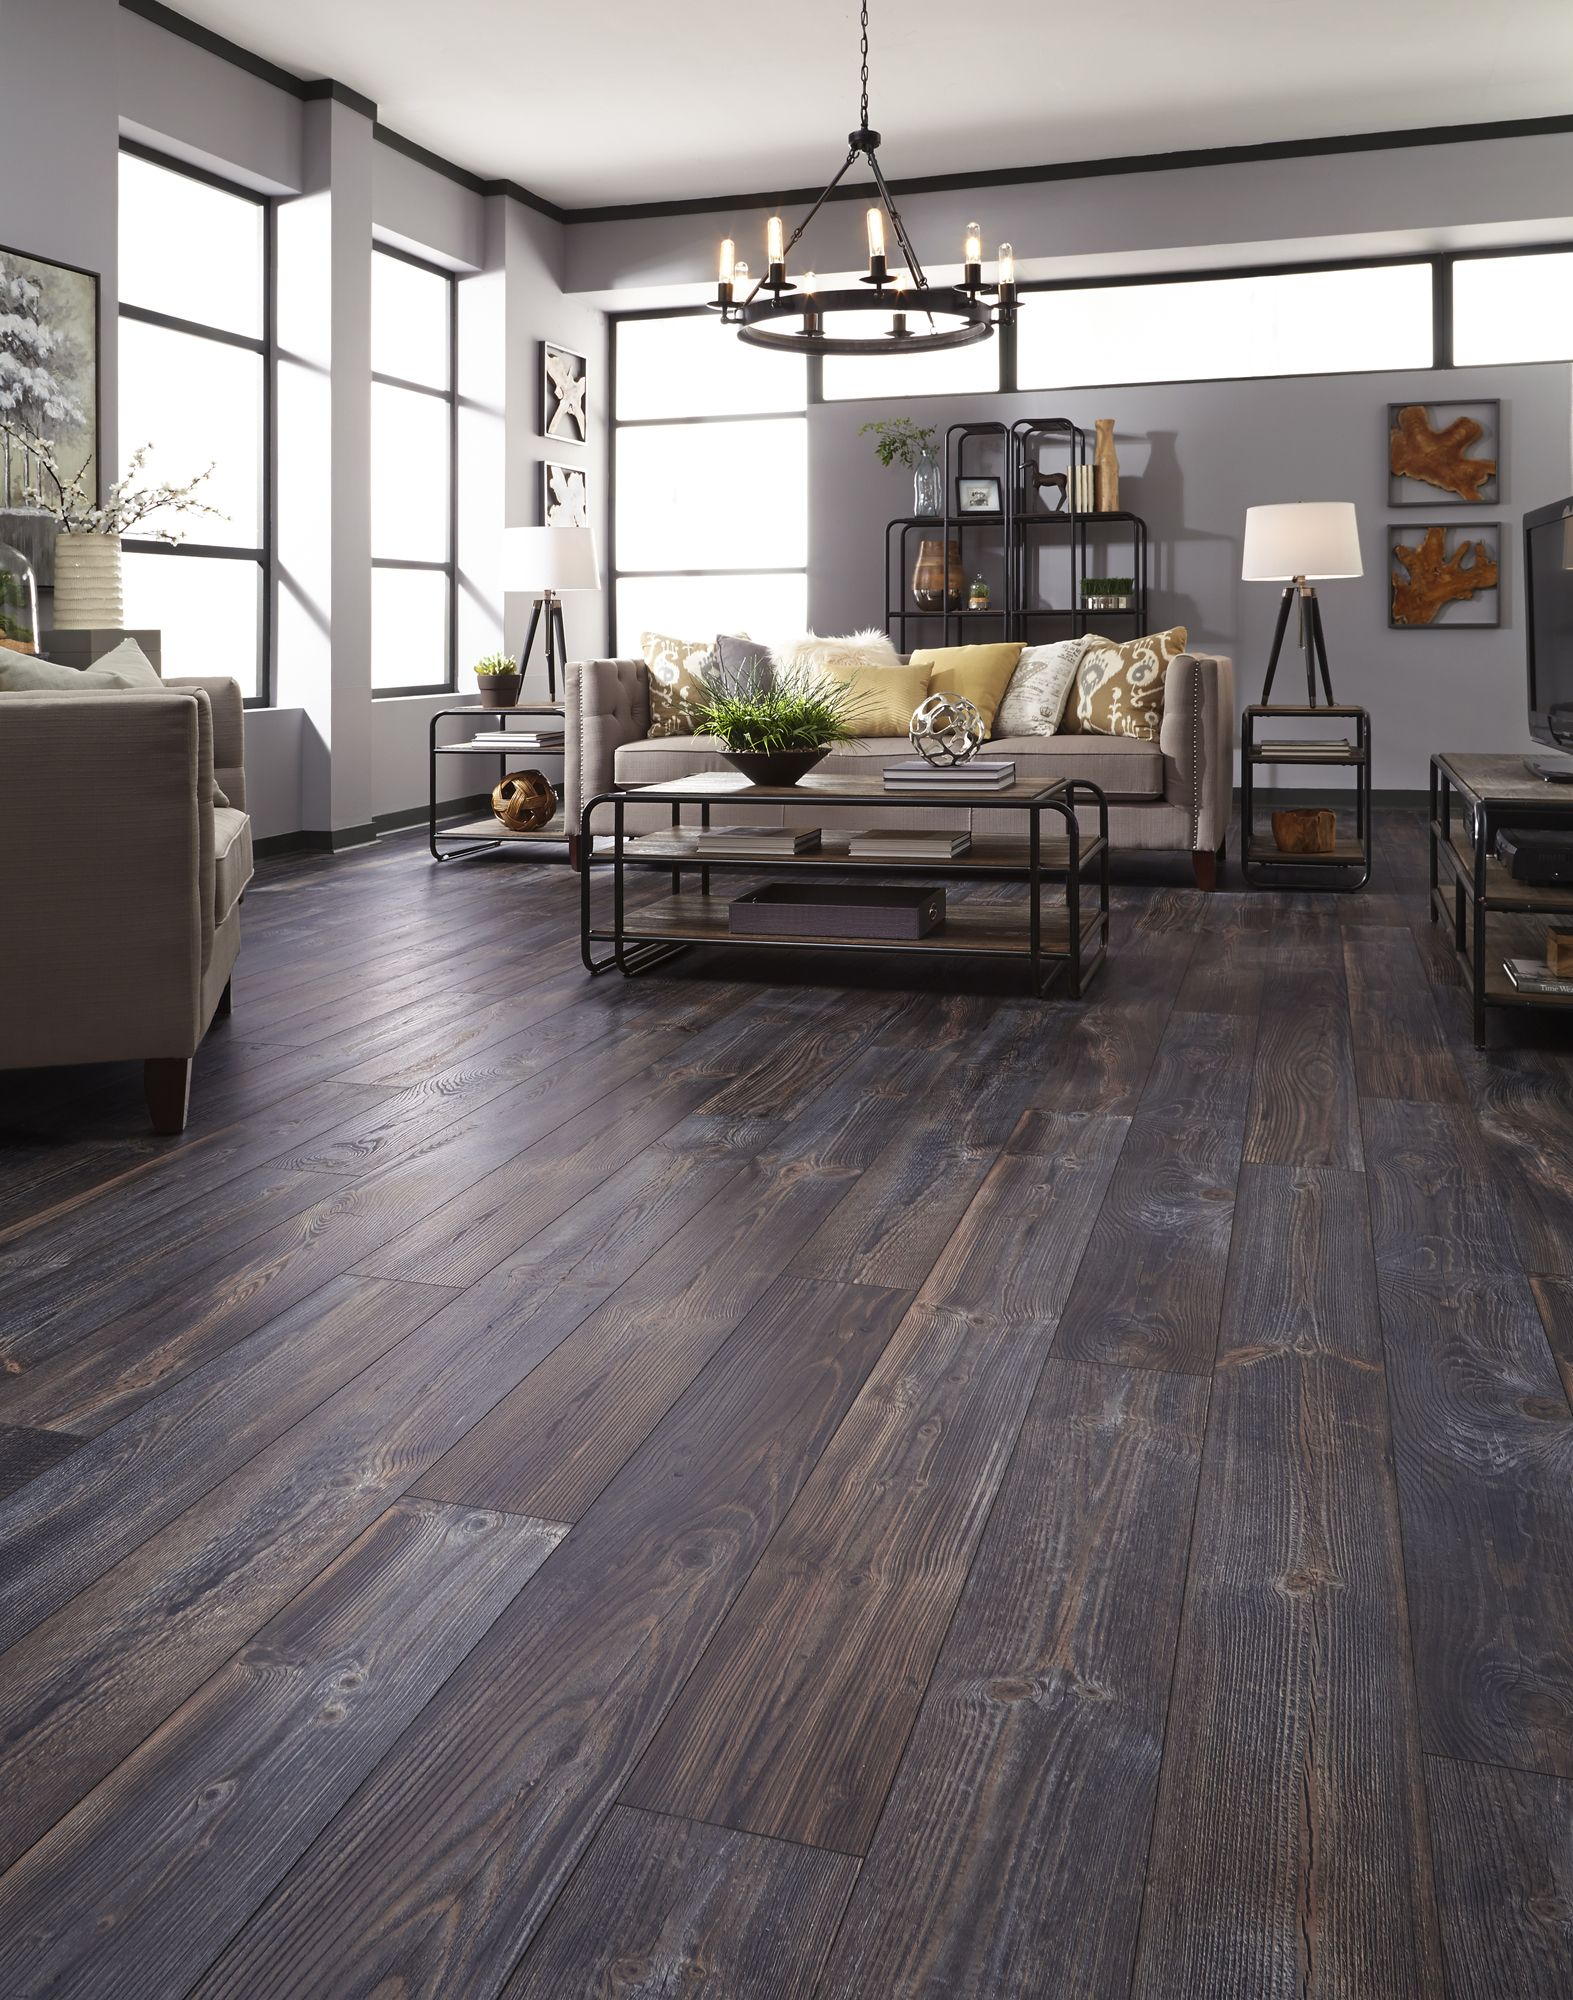 Fill Your Home With The Harmonious Style Of Boardwalk Oak